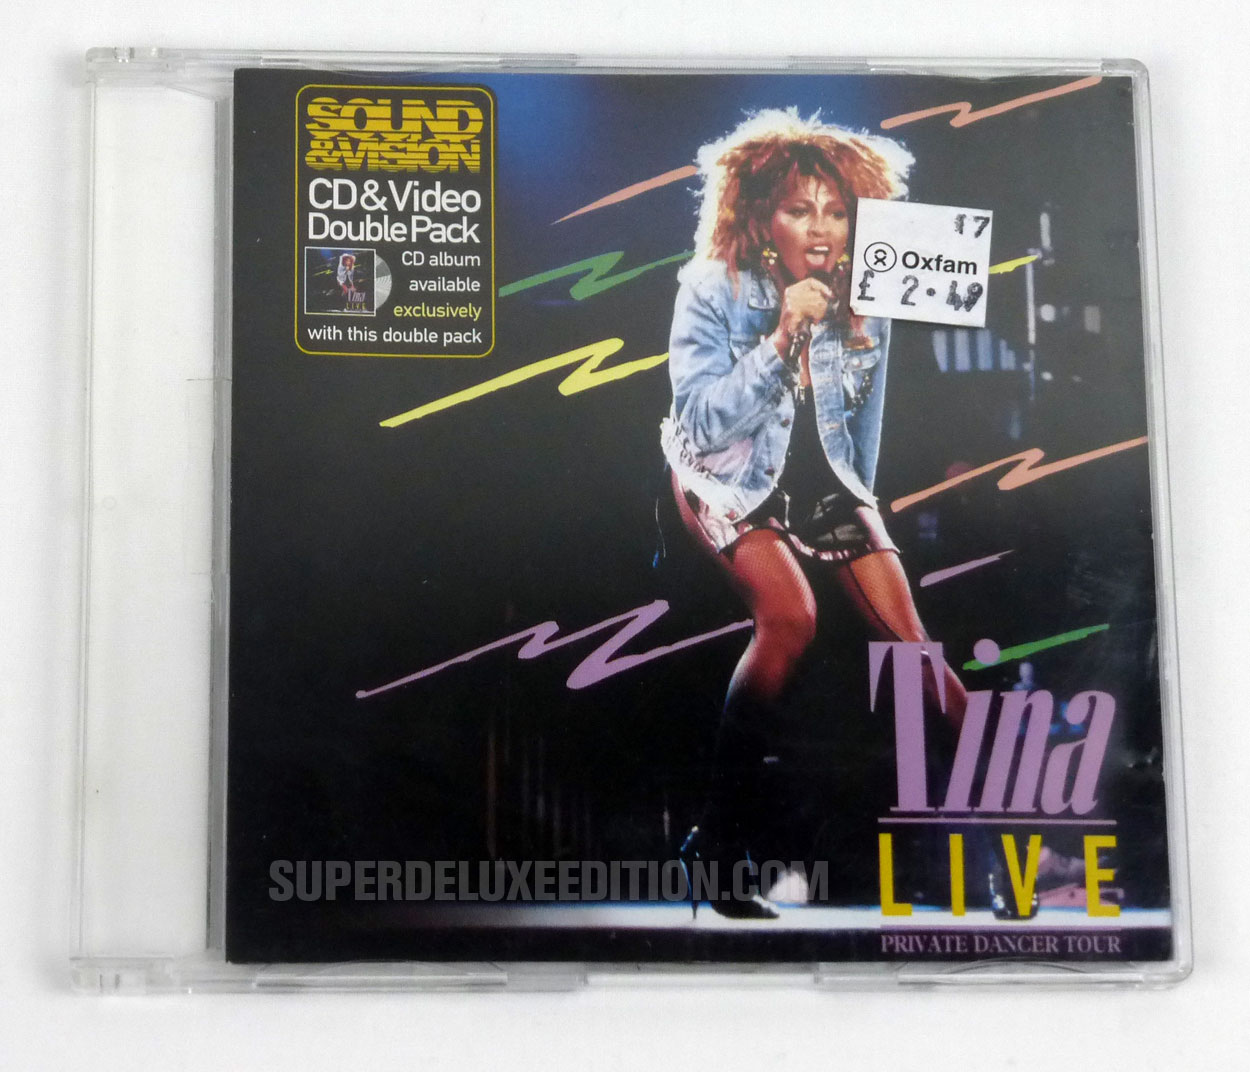 Tina Live! Sound&Vision CD